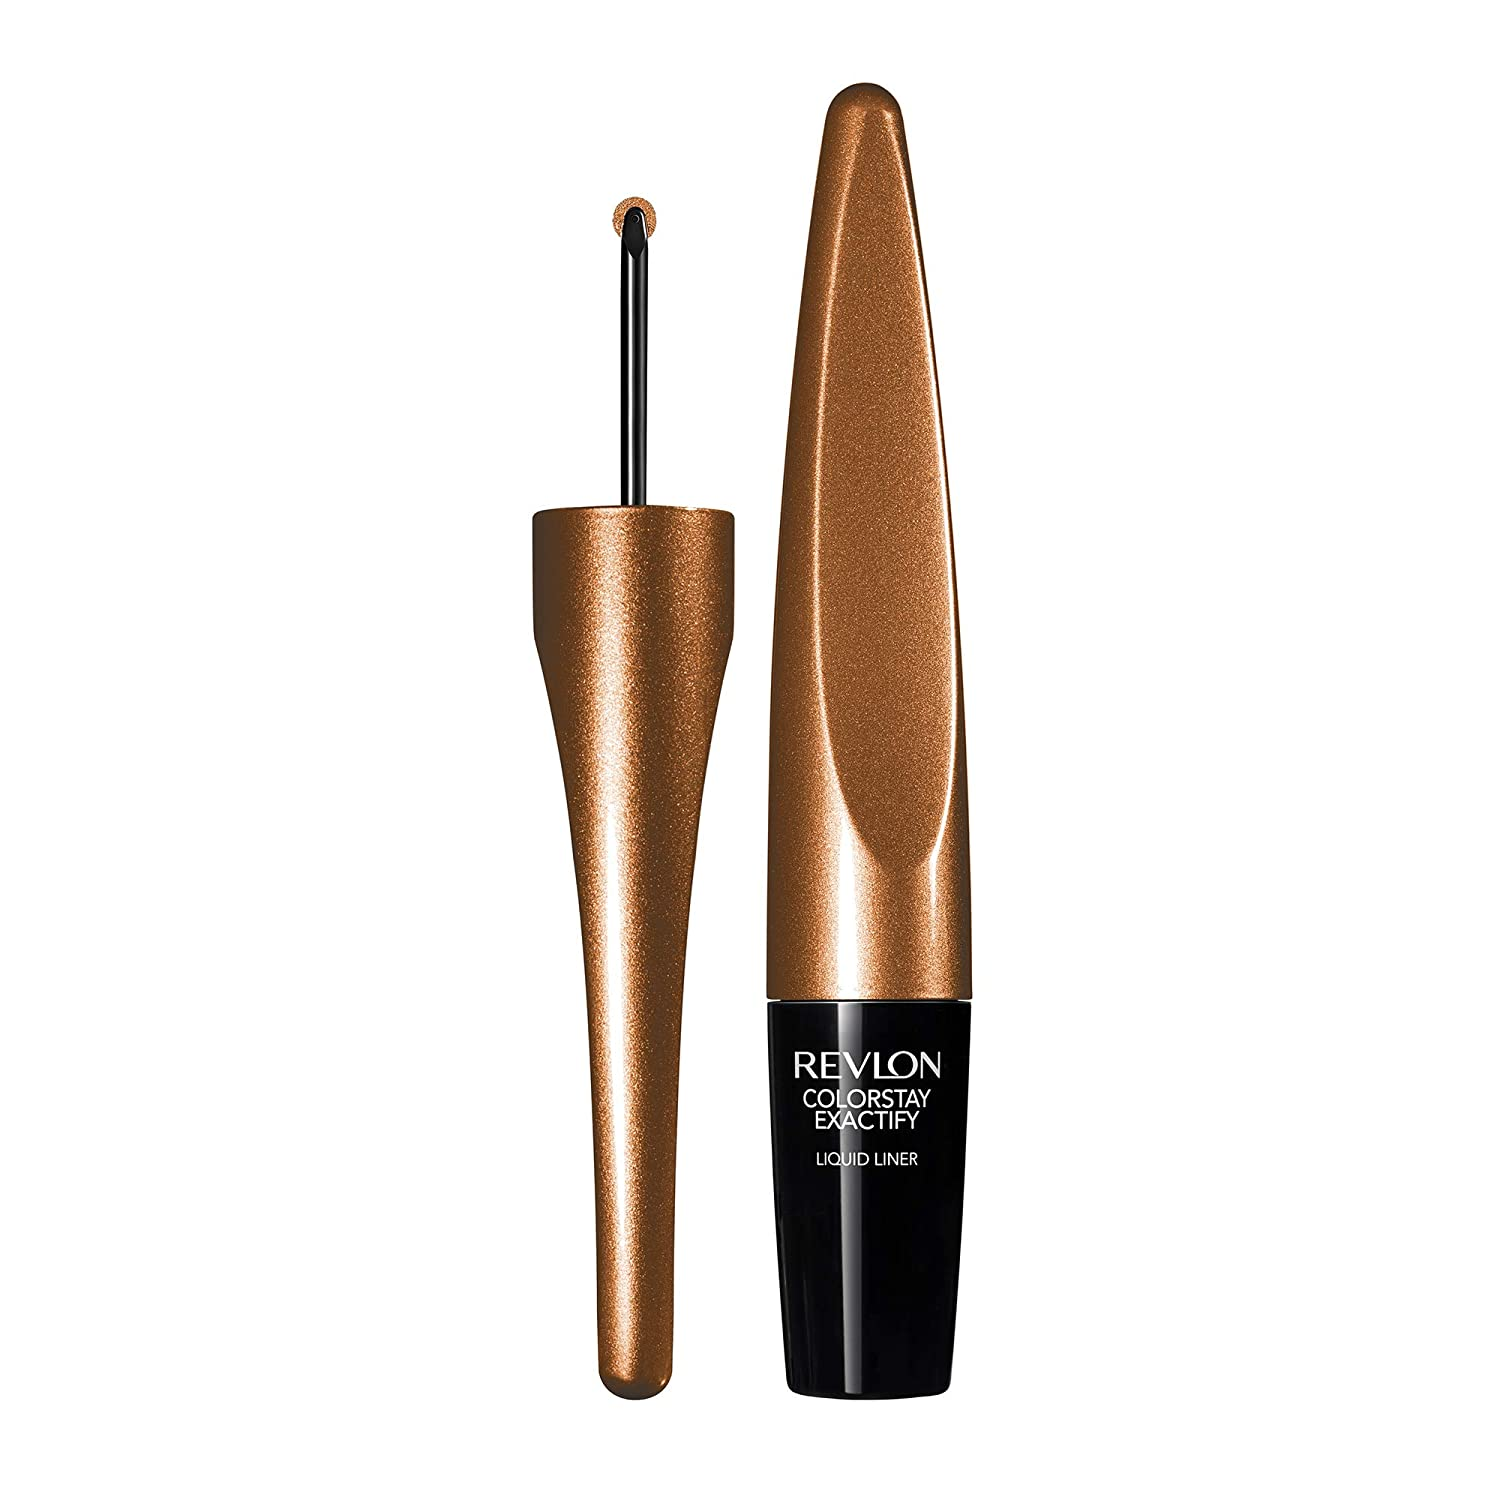 Revlon Colorstay Exactify Liquid Liner, Stunning Copper, 1.0 Fluid Ounce